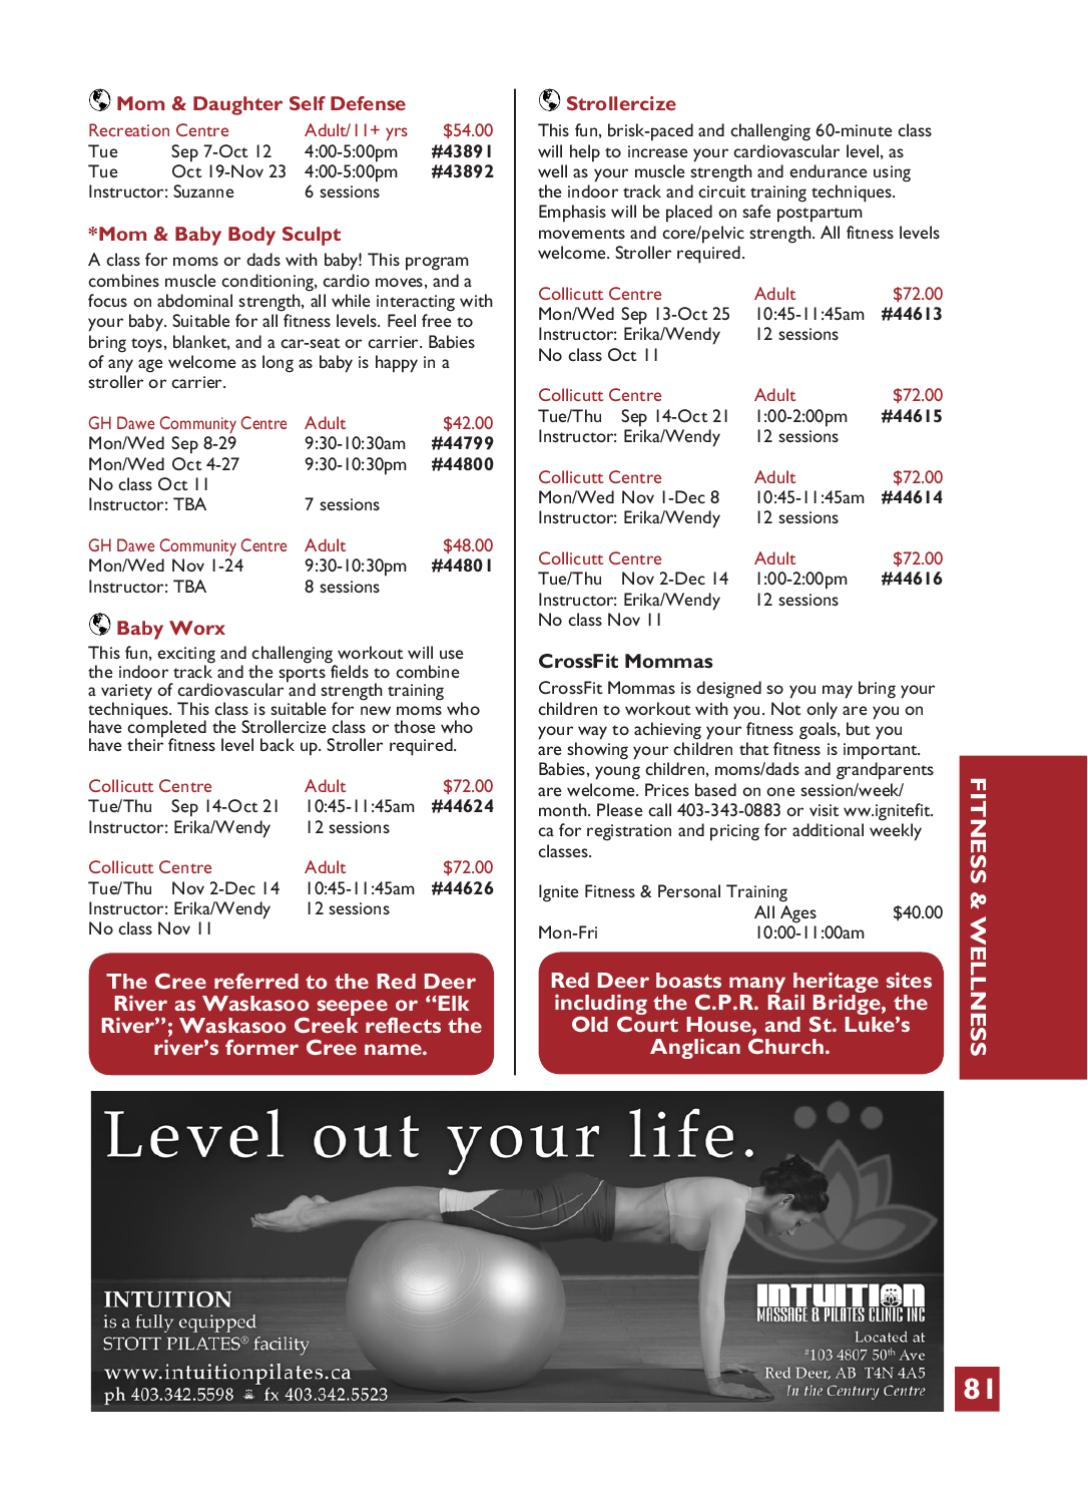 Fall Activity Guide 2010 By The City Of Red Deer  Issuu for Gh Dawe Red Deer